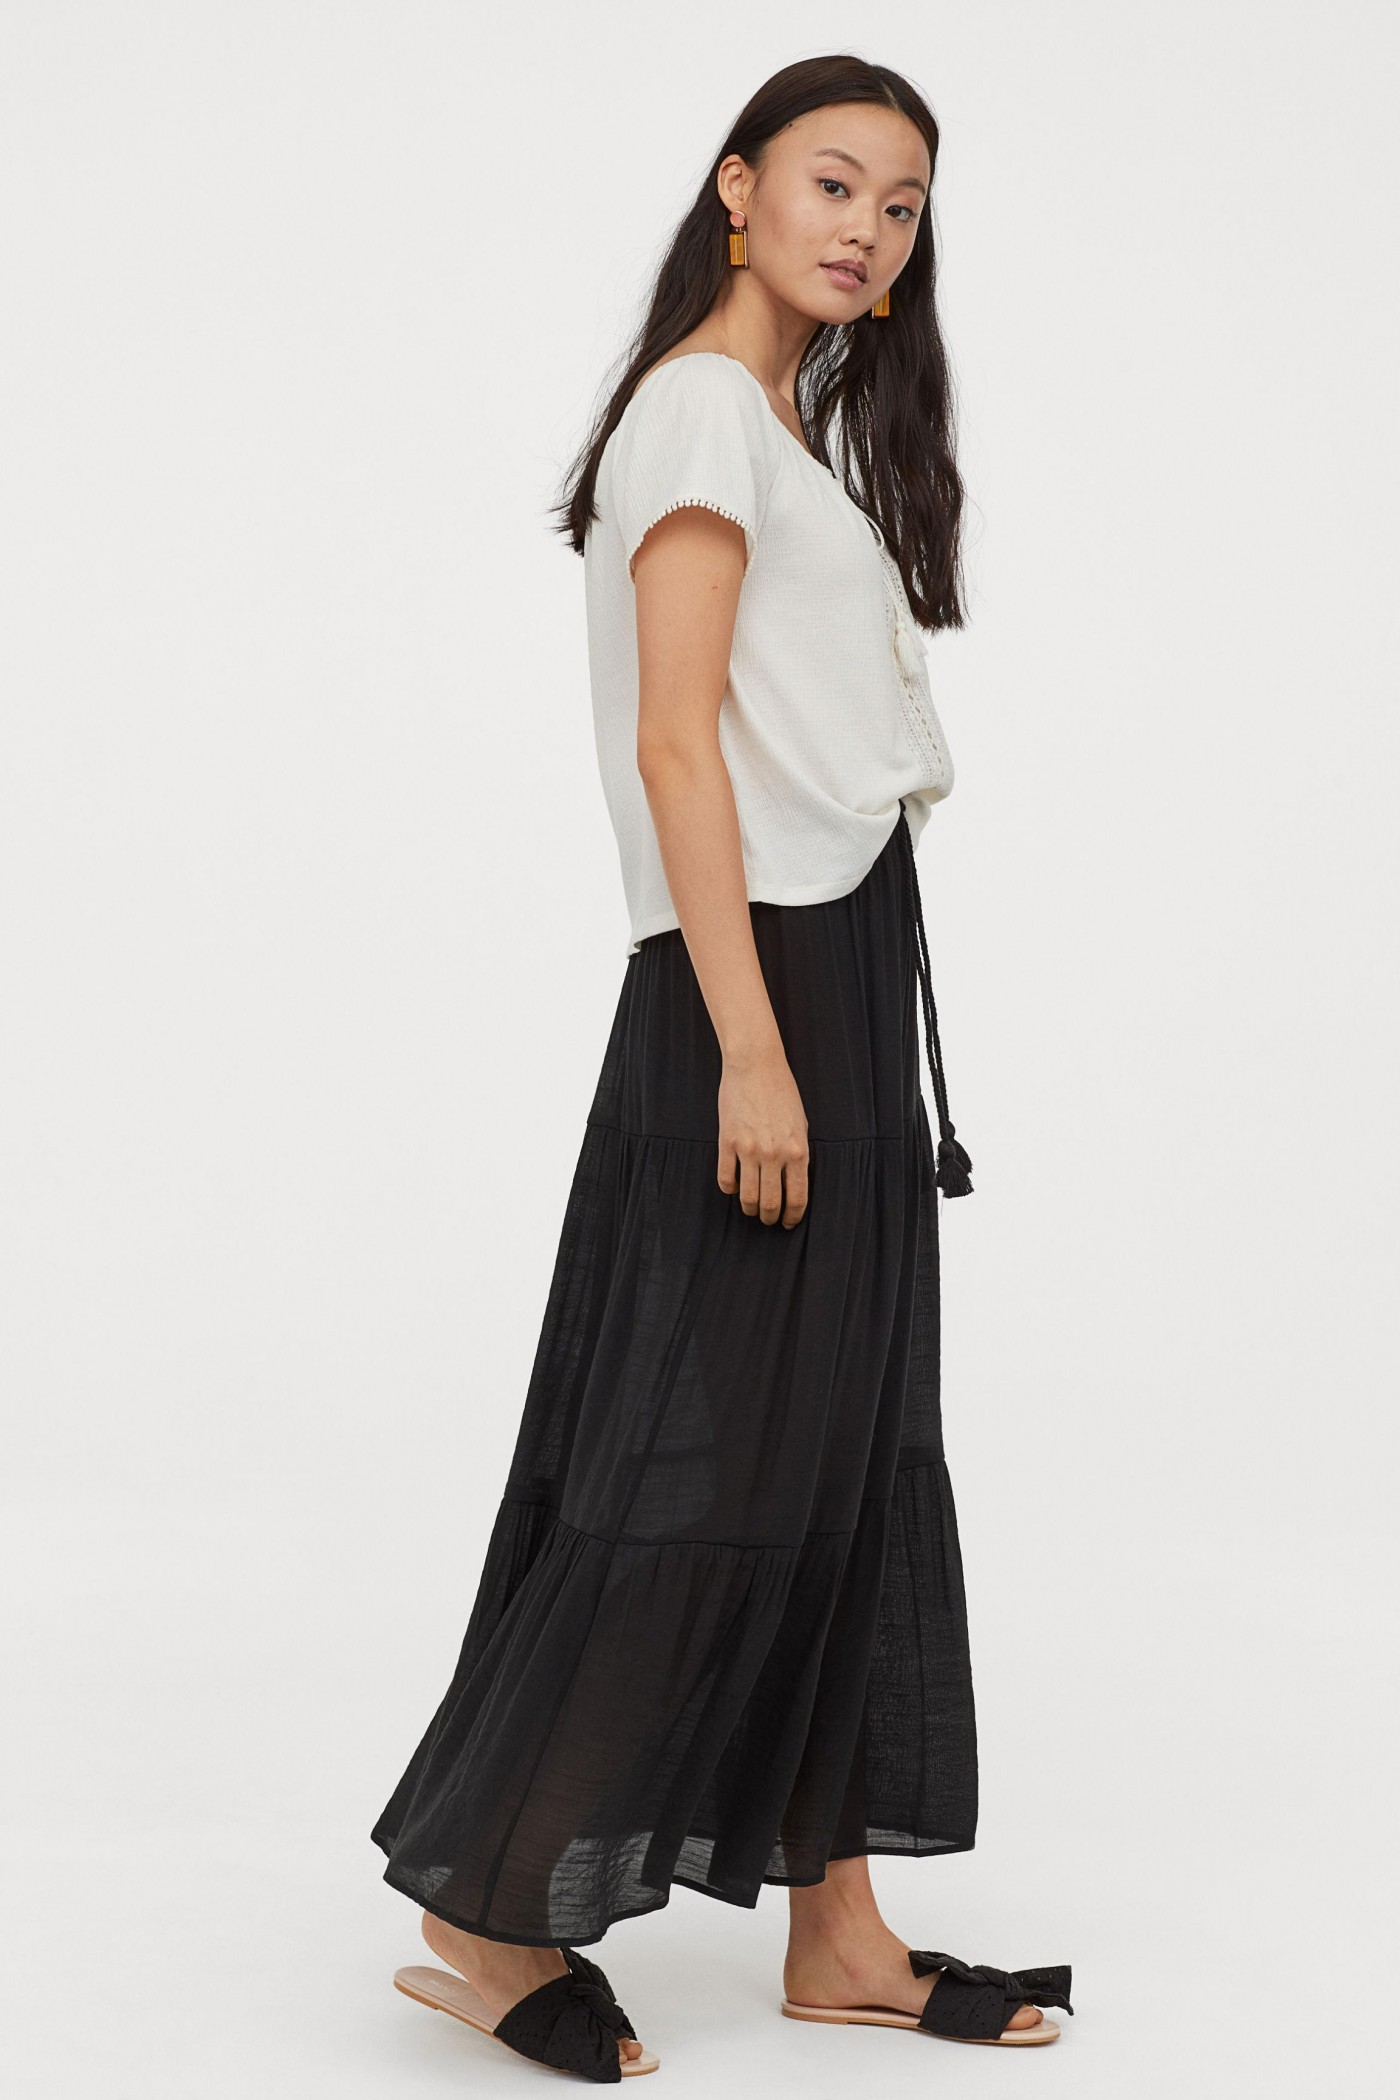 Modest clothing trends